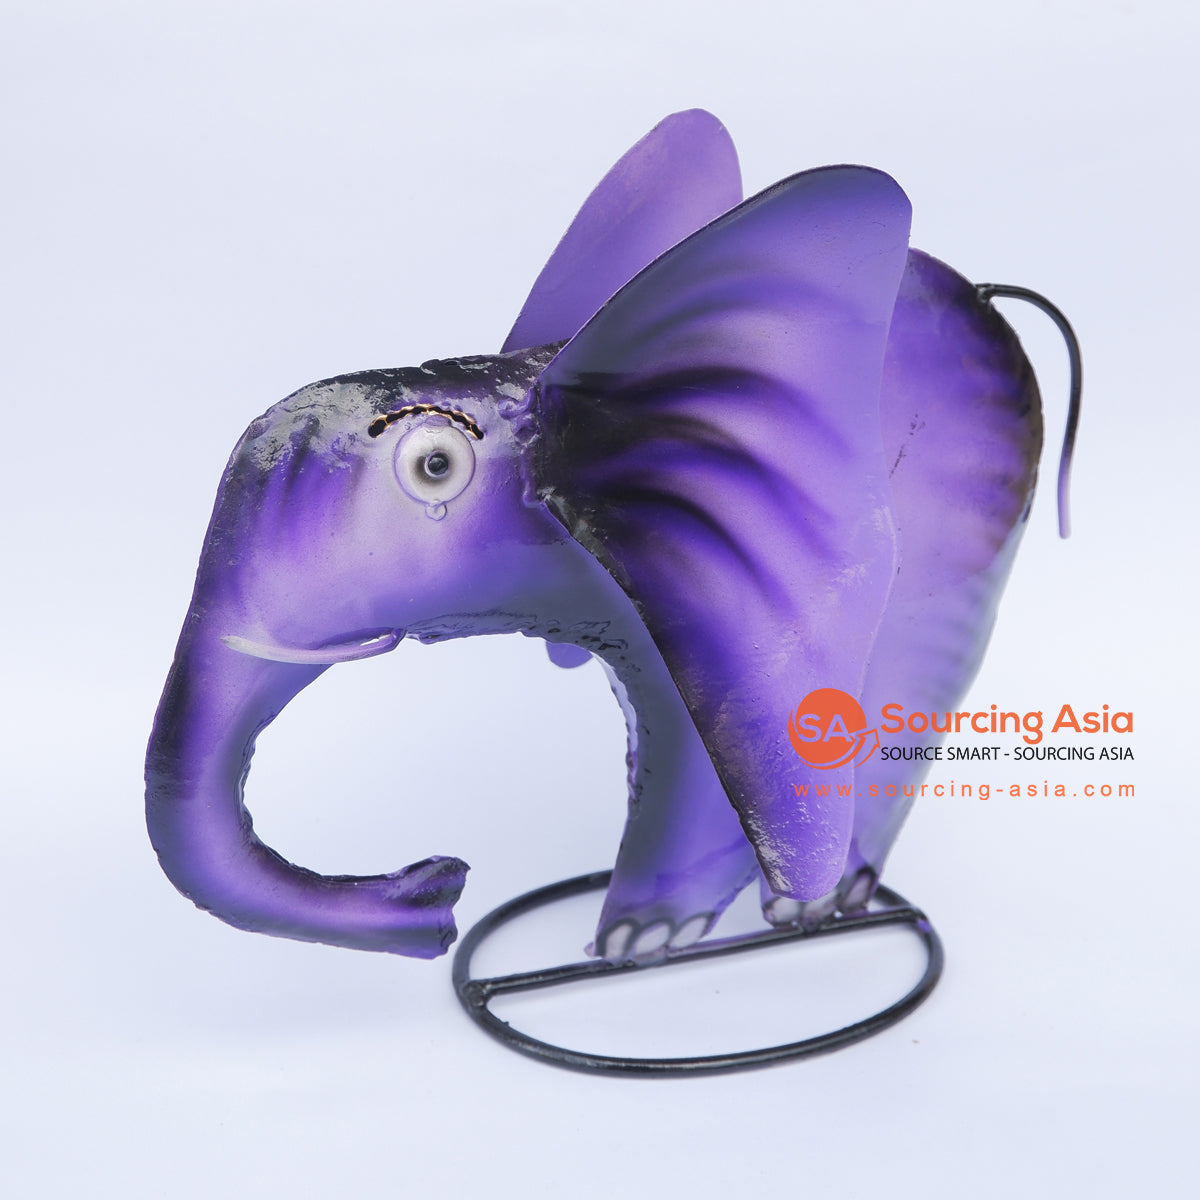 PEBC156 PURPLE AIRBRUSHED PAINTED METAL ELEPHANT DECORATION